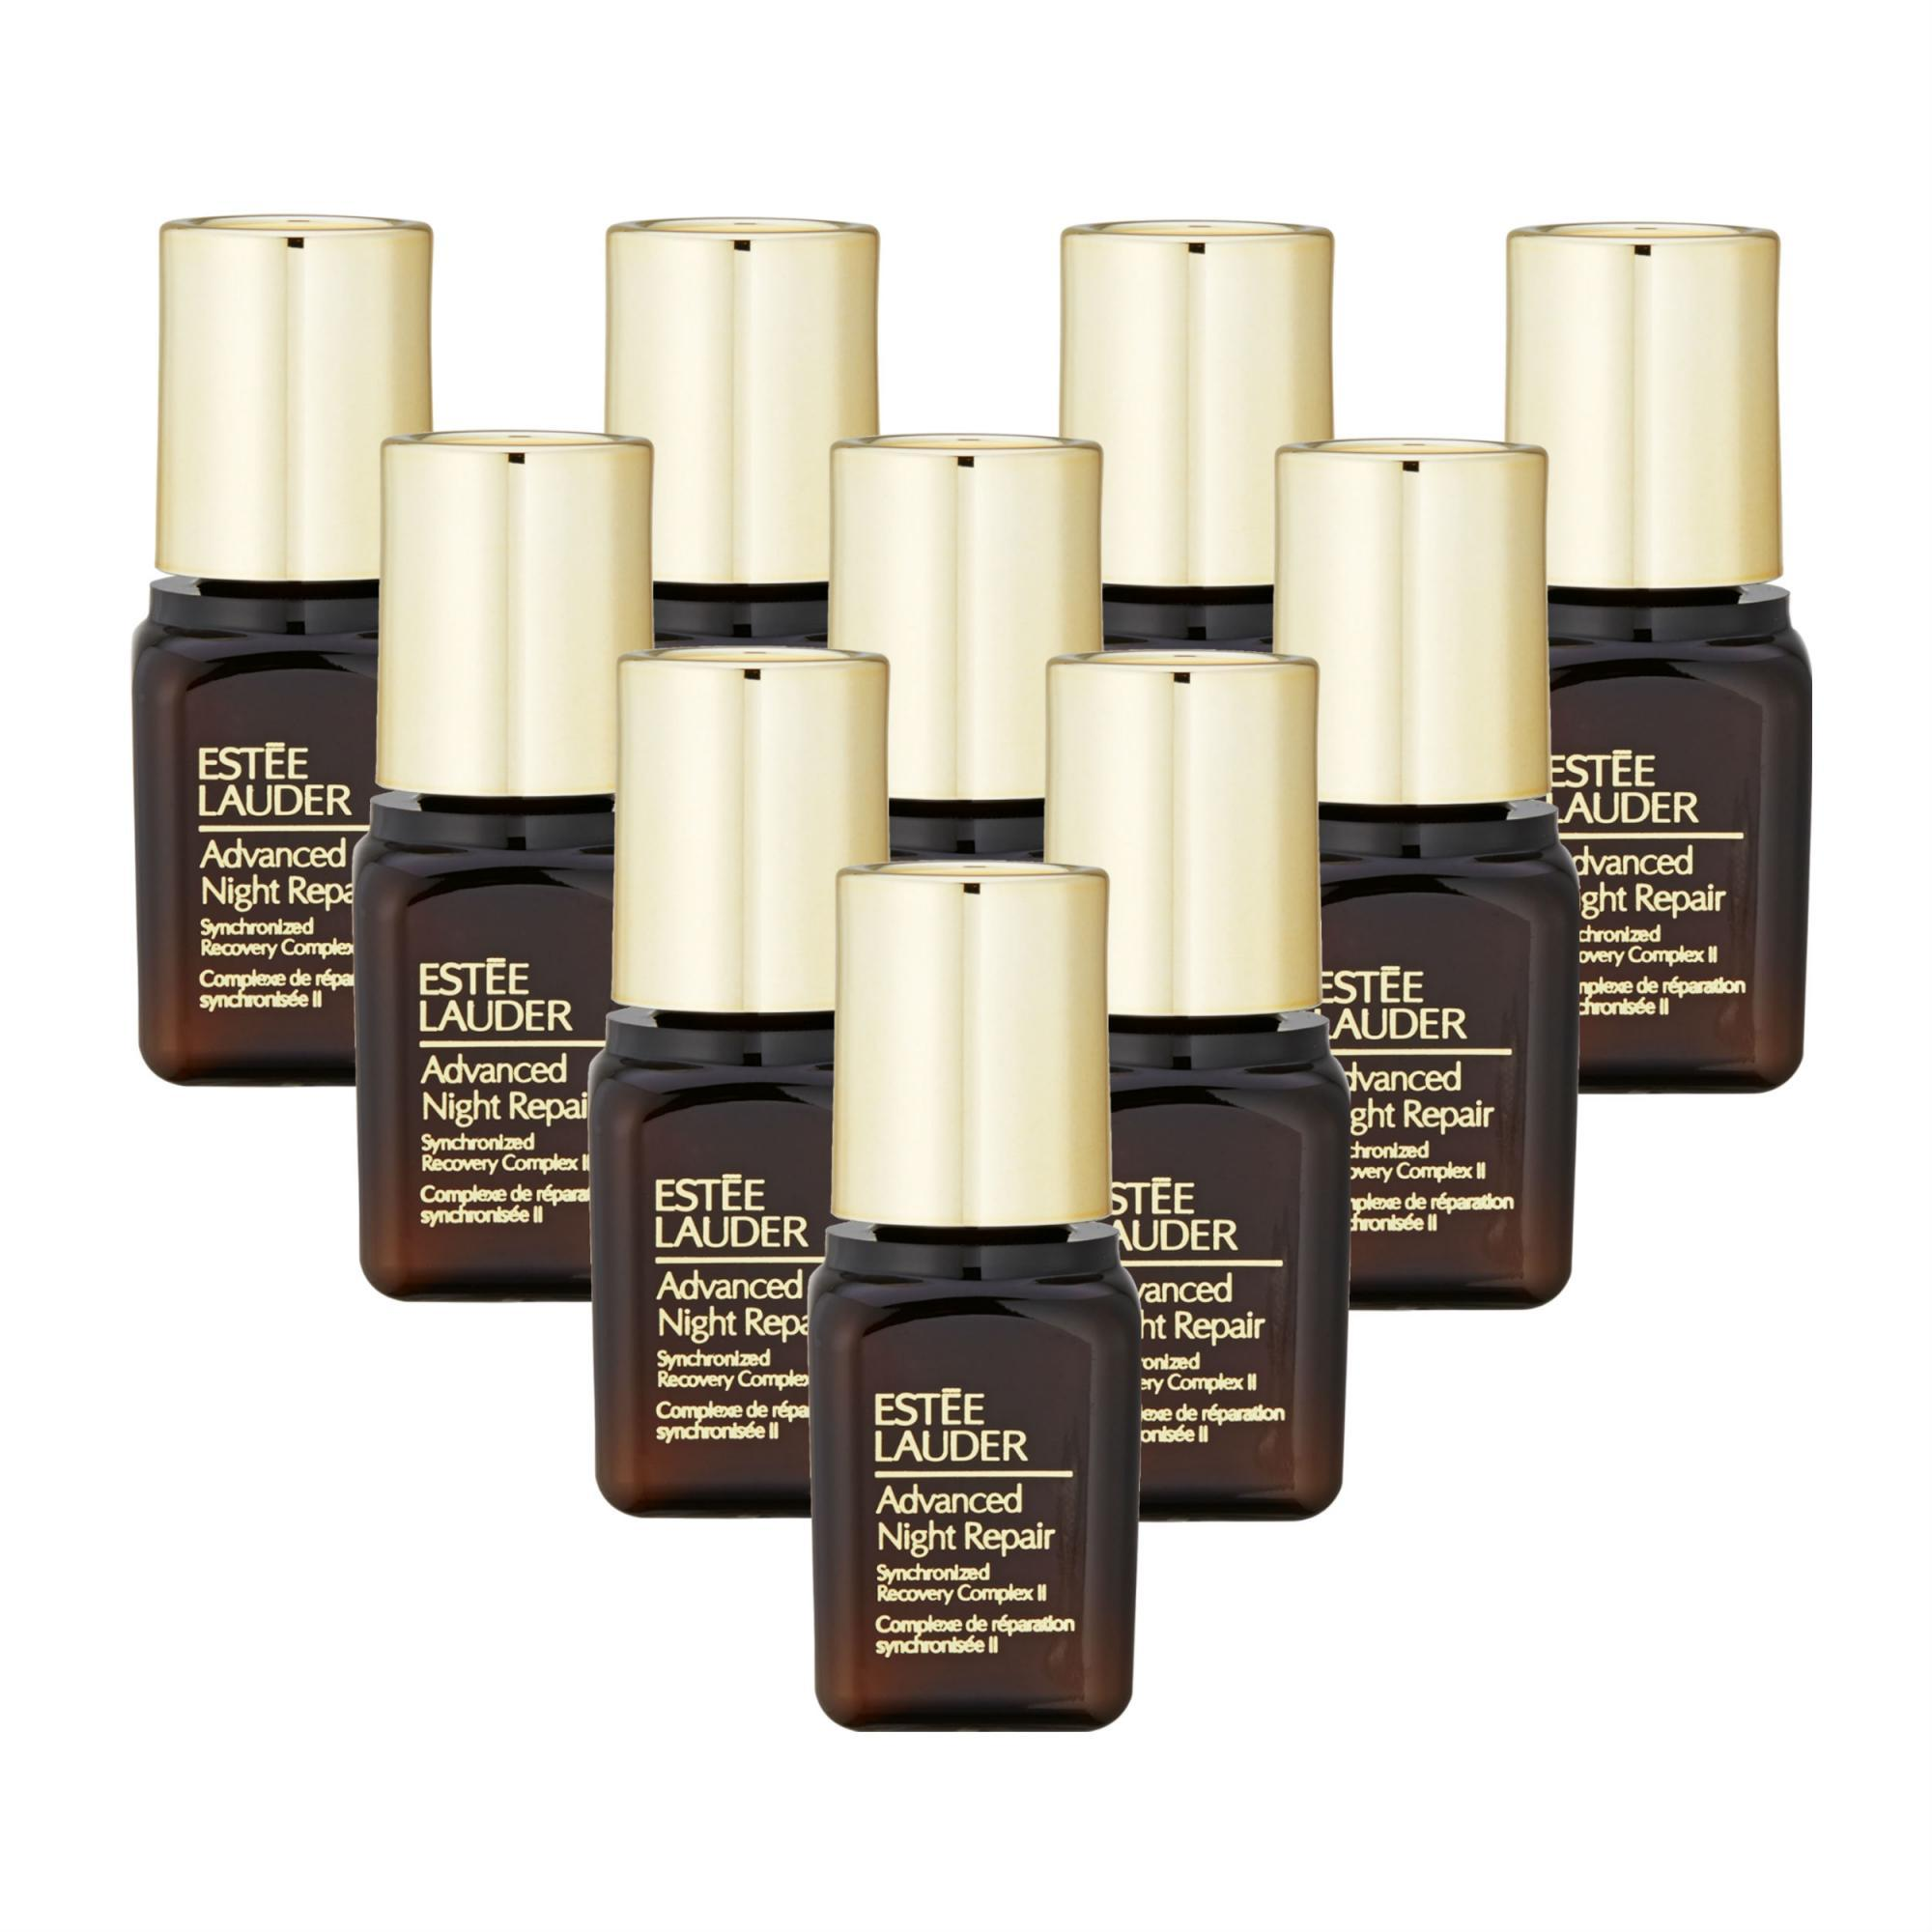 10 x Estee Lauder Advanced Night Repair Synchronized Recovery Complex II 7ml/0.24oz - intl